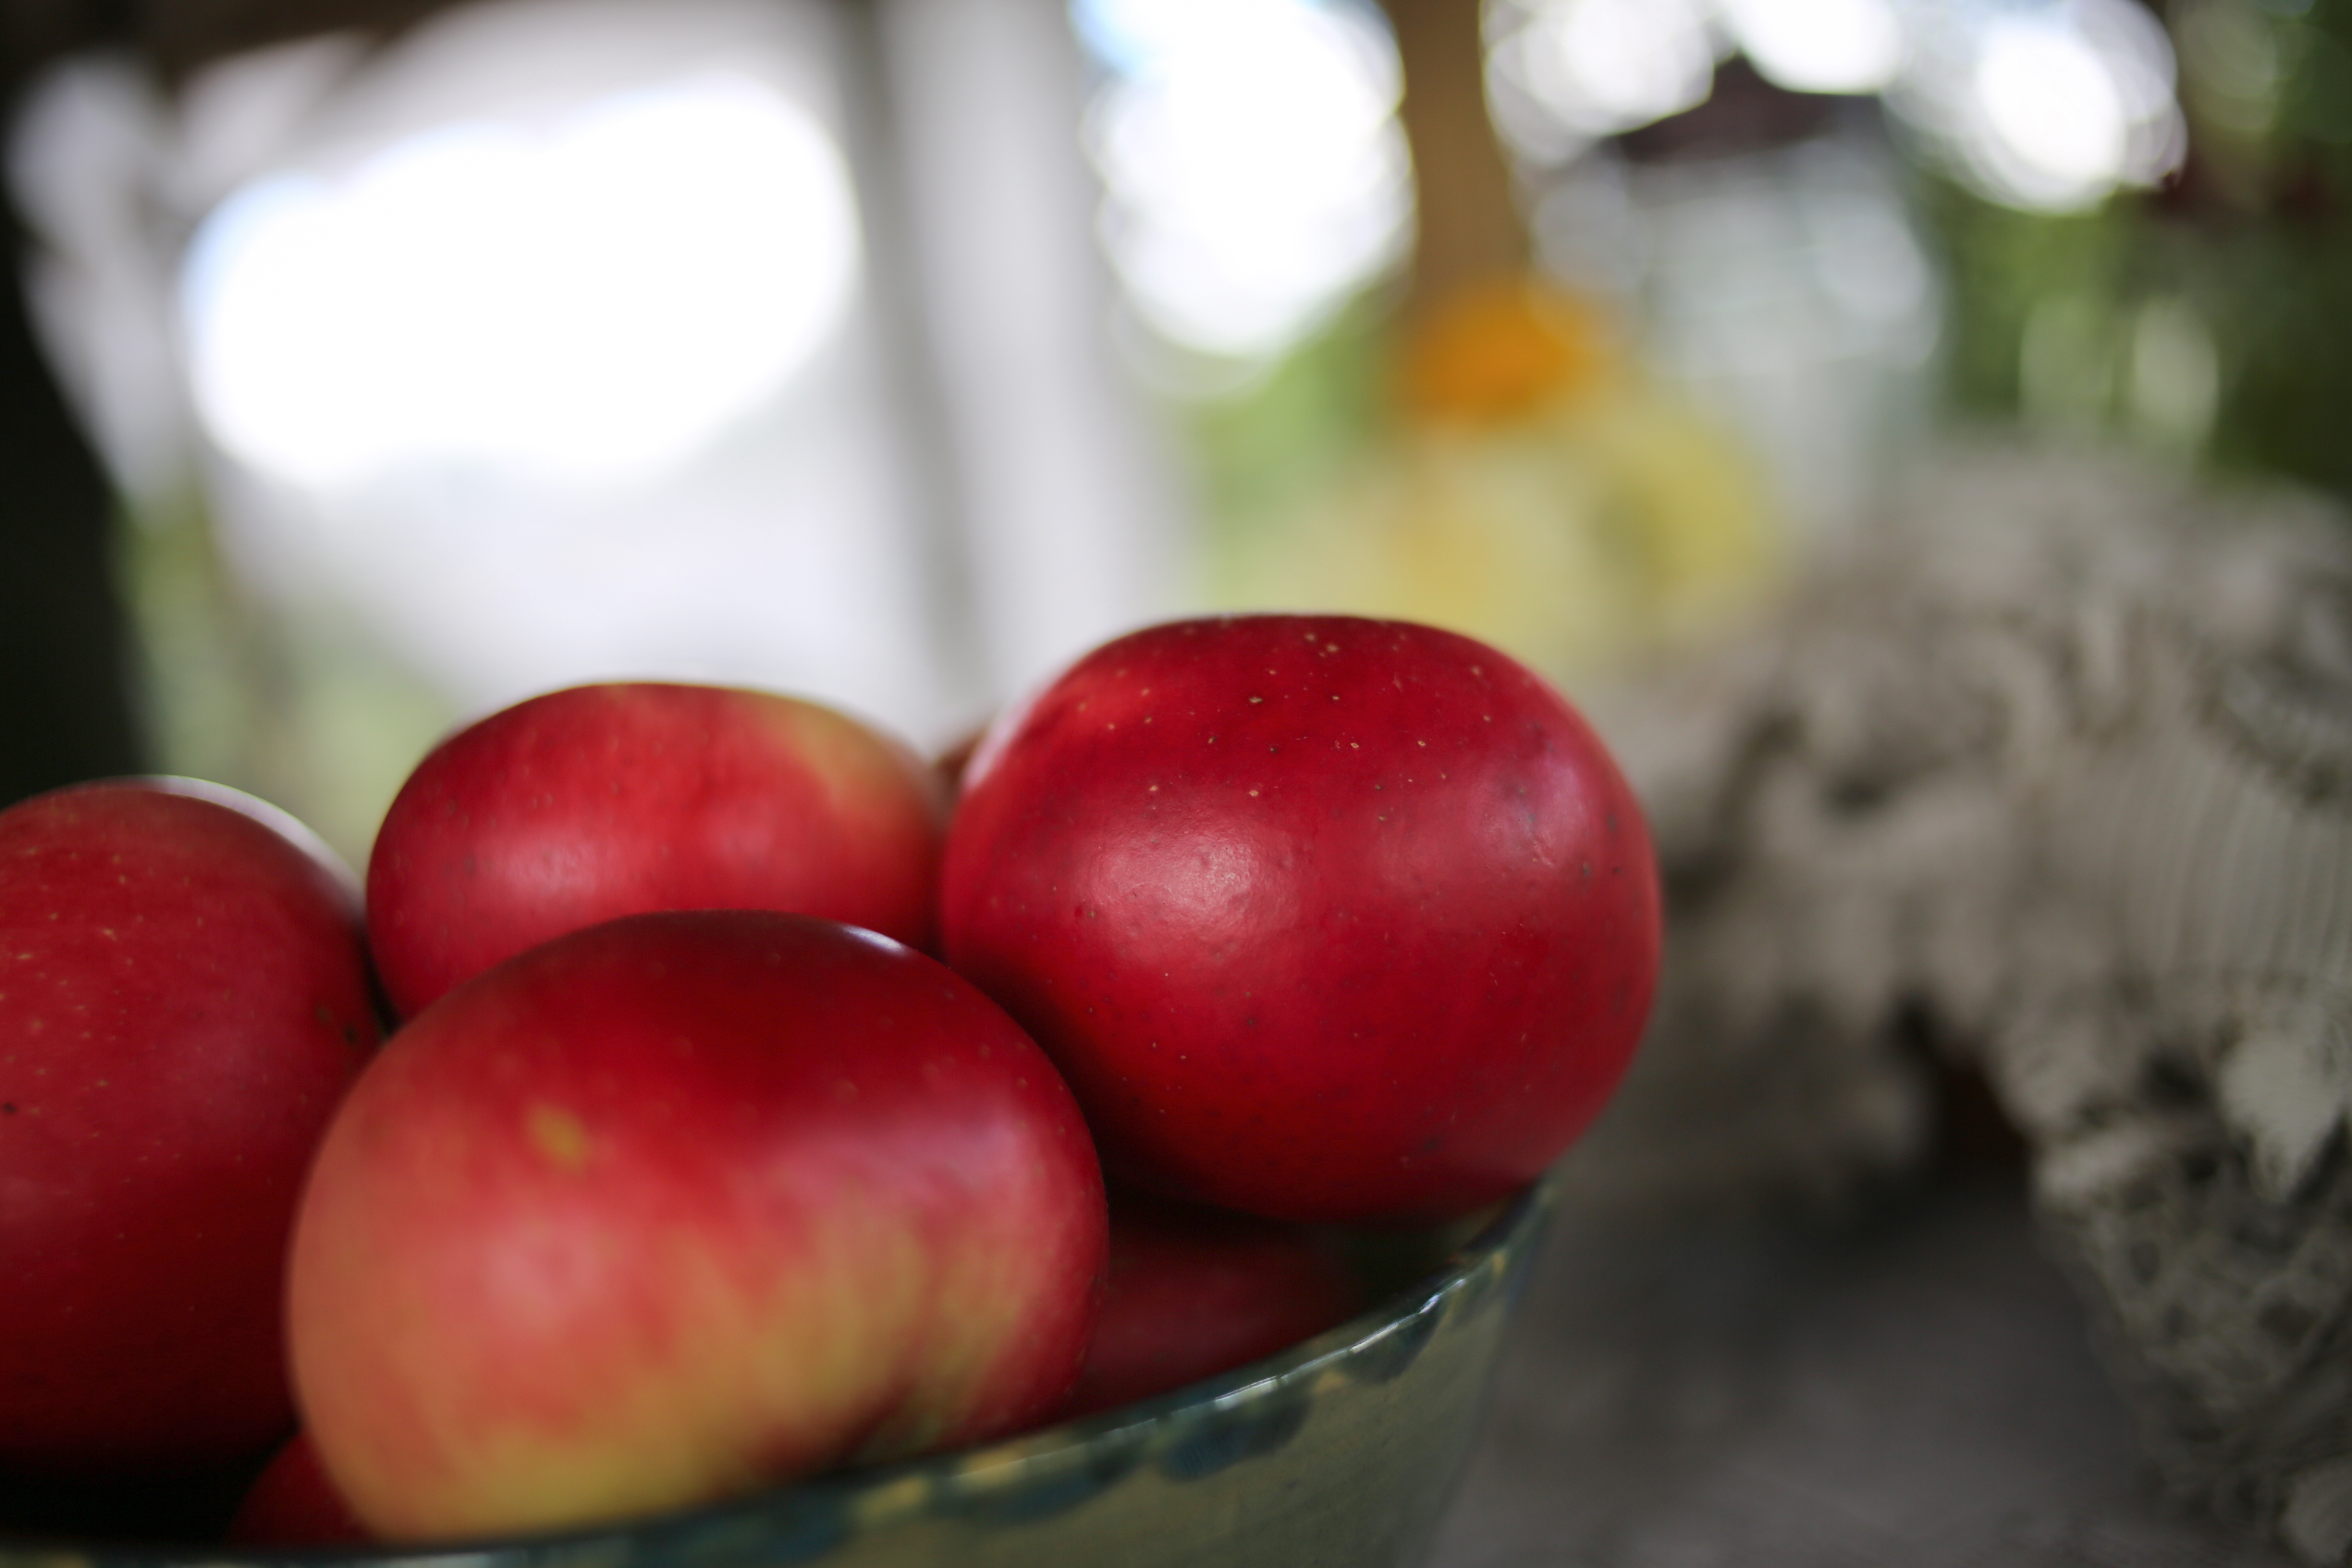 apples from our trees